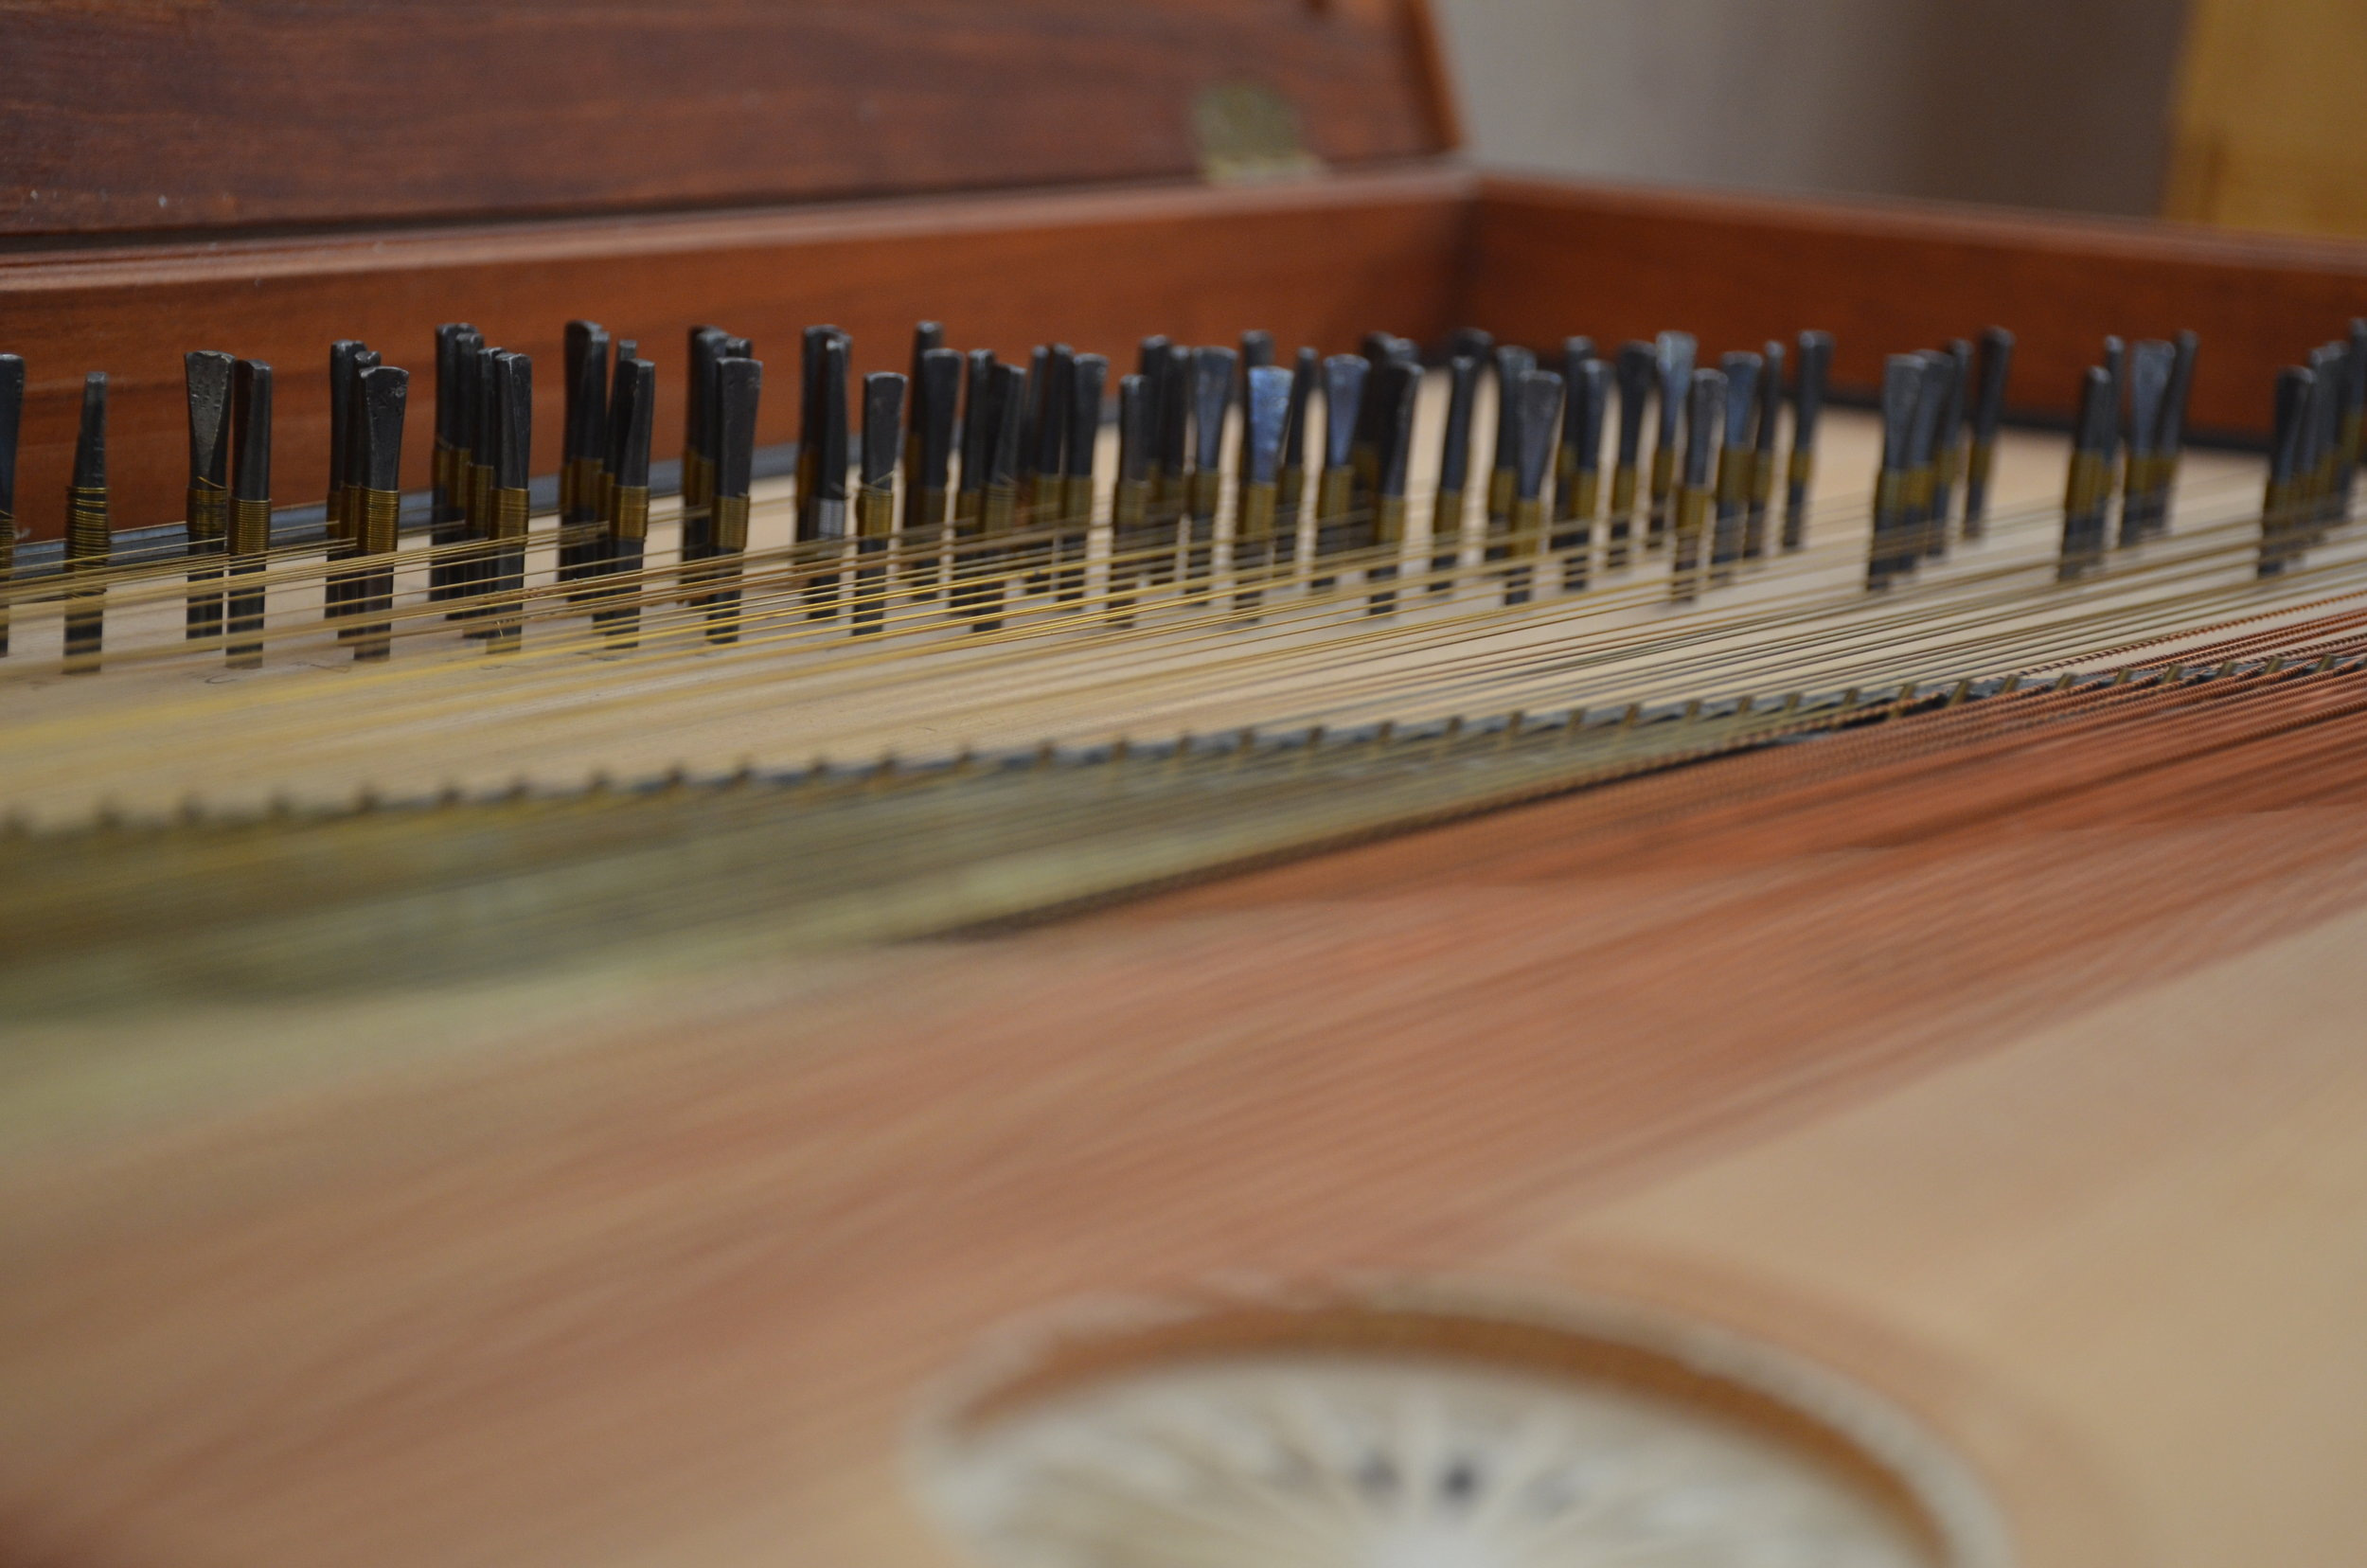 Detail of the clavichord.